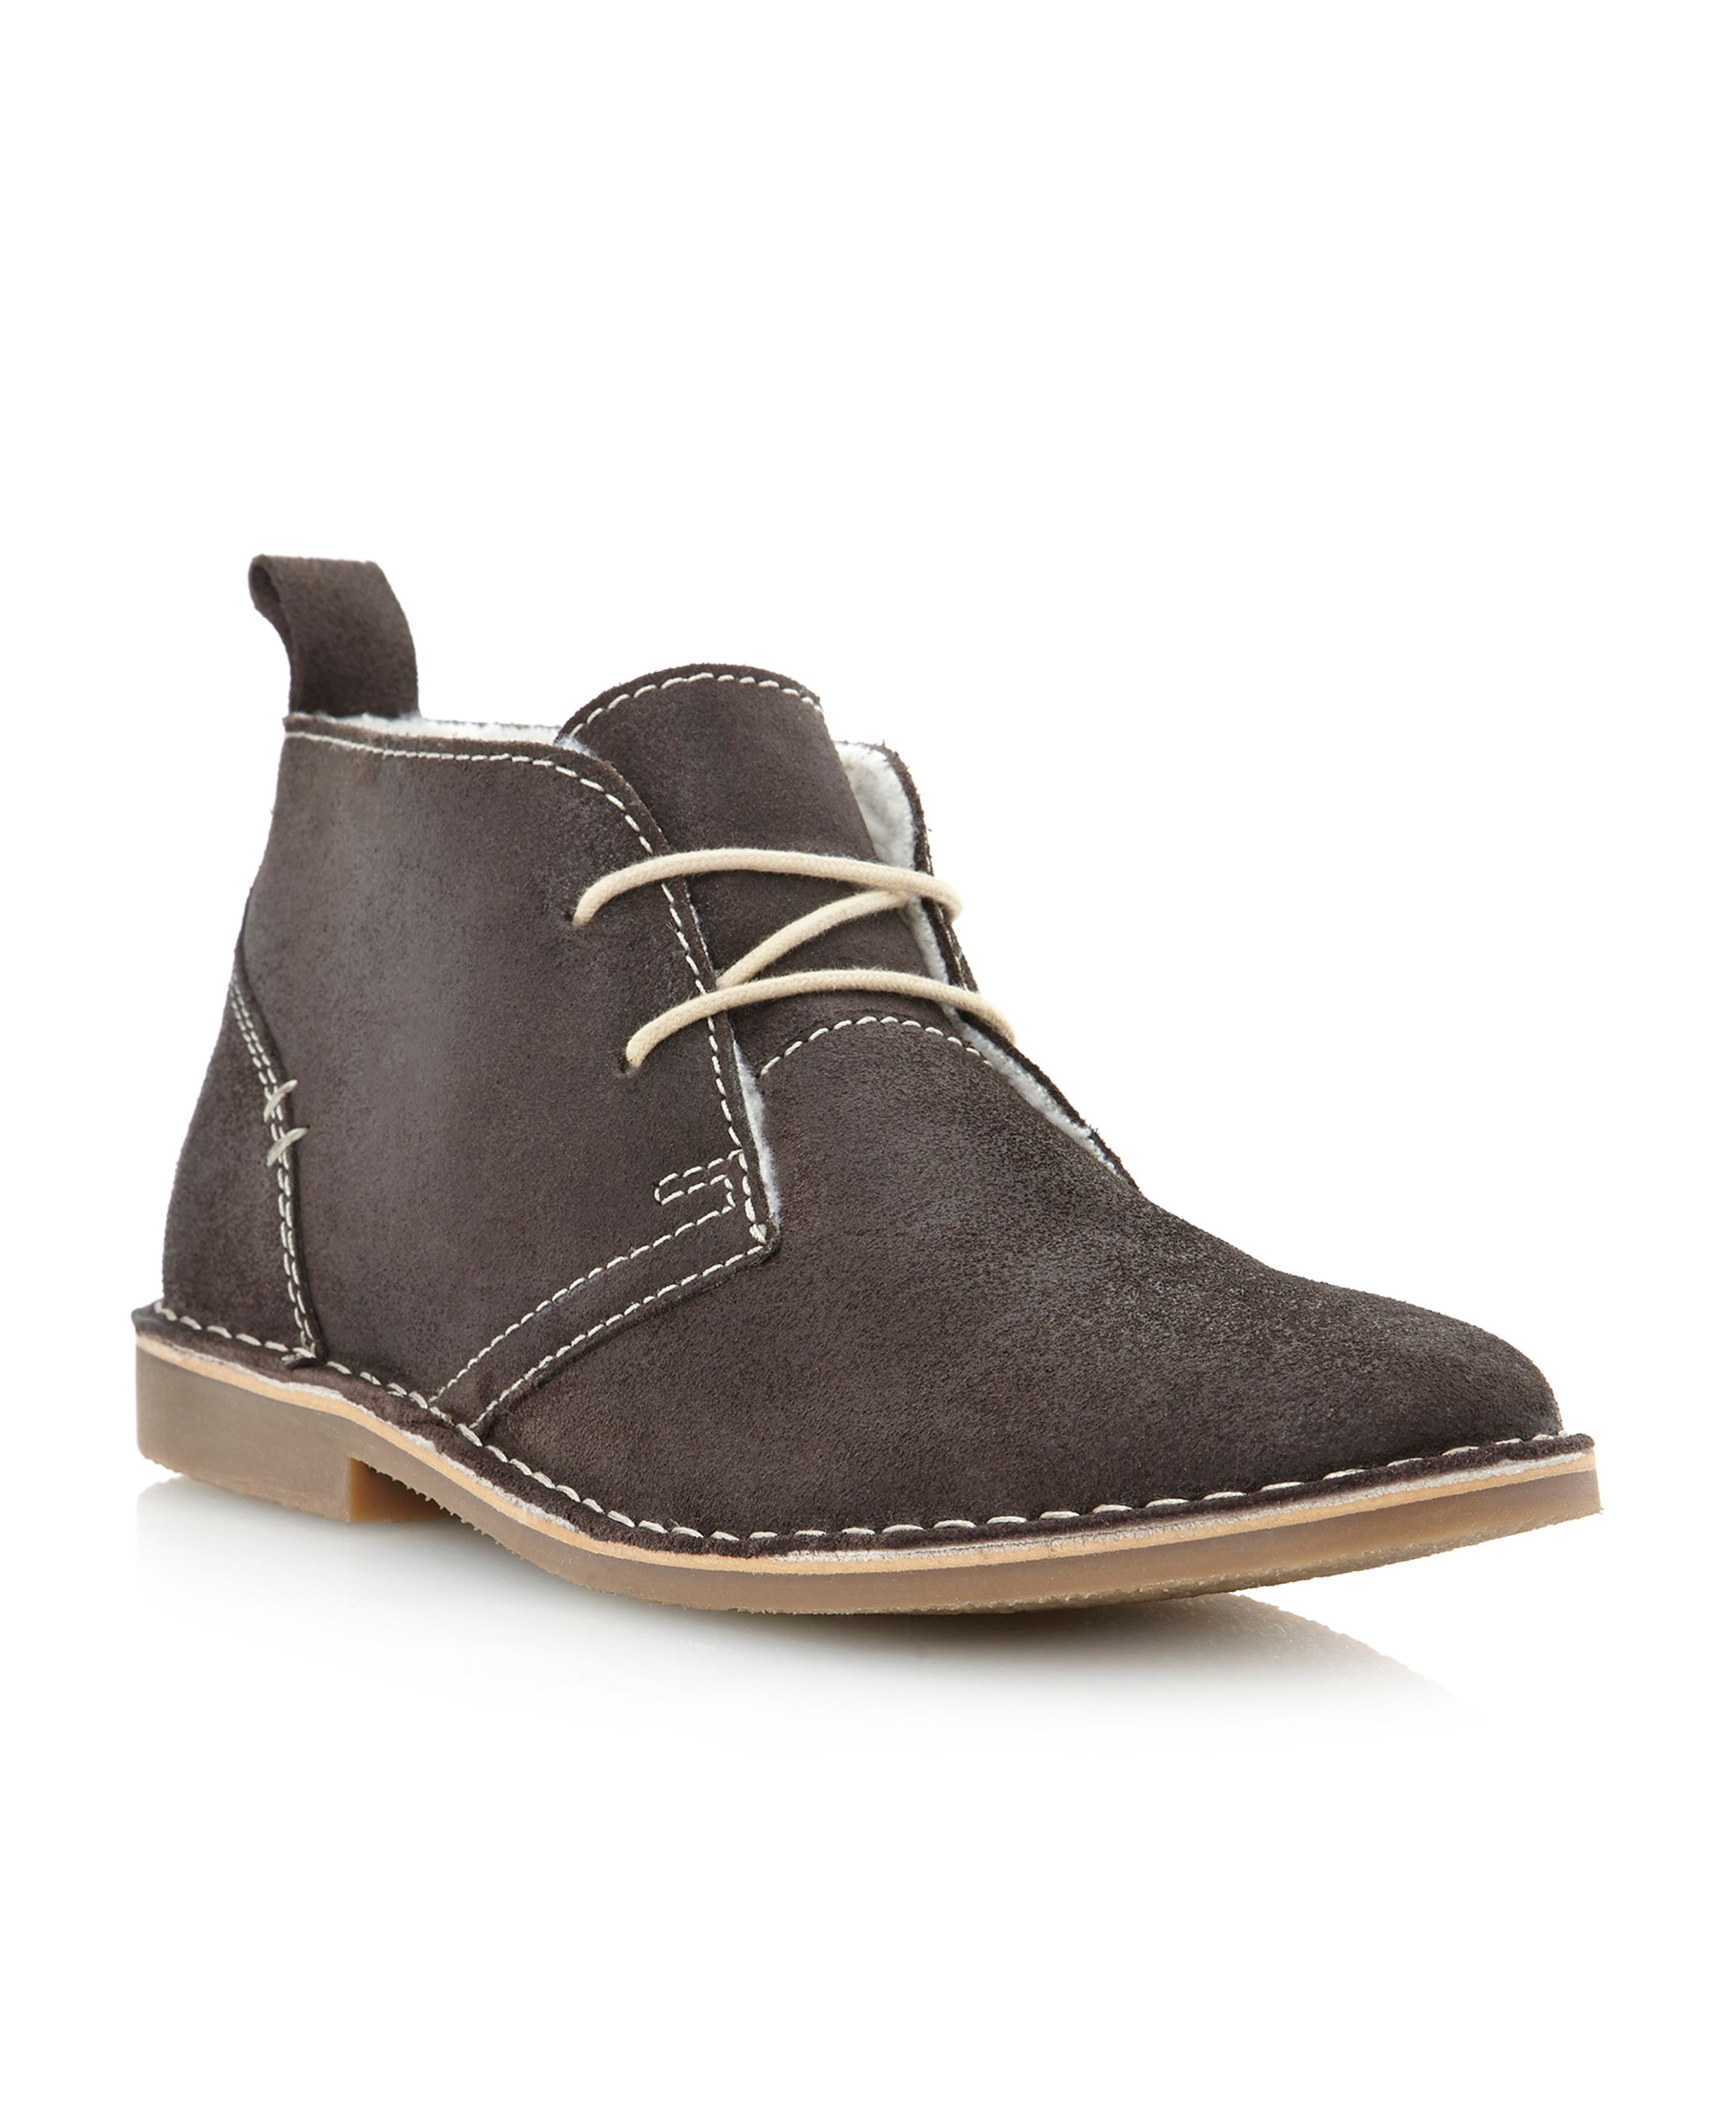 Hampstead faux fur lined desert boot